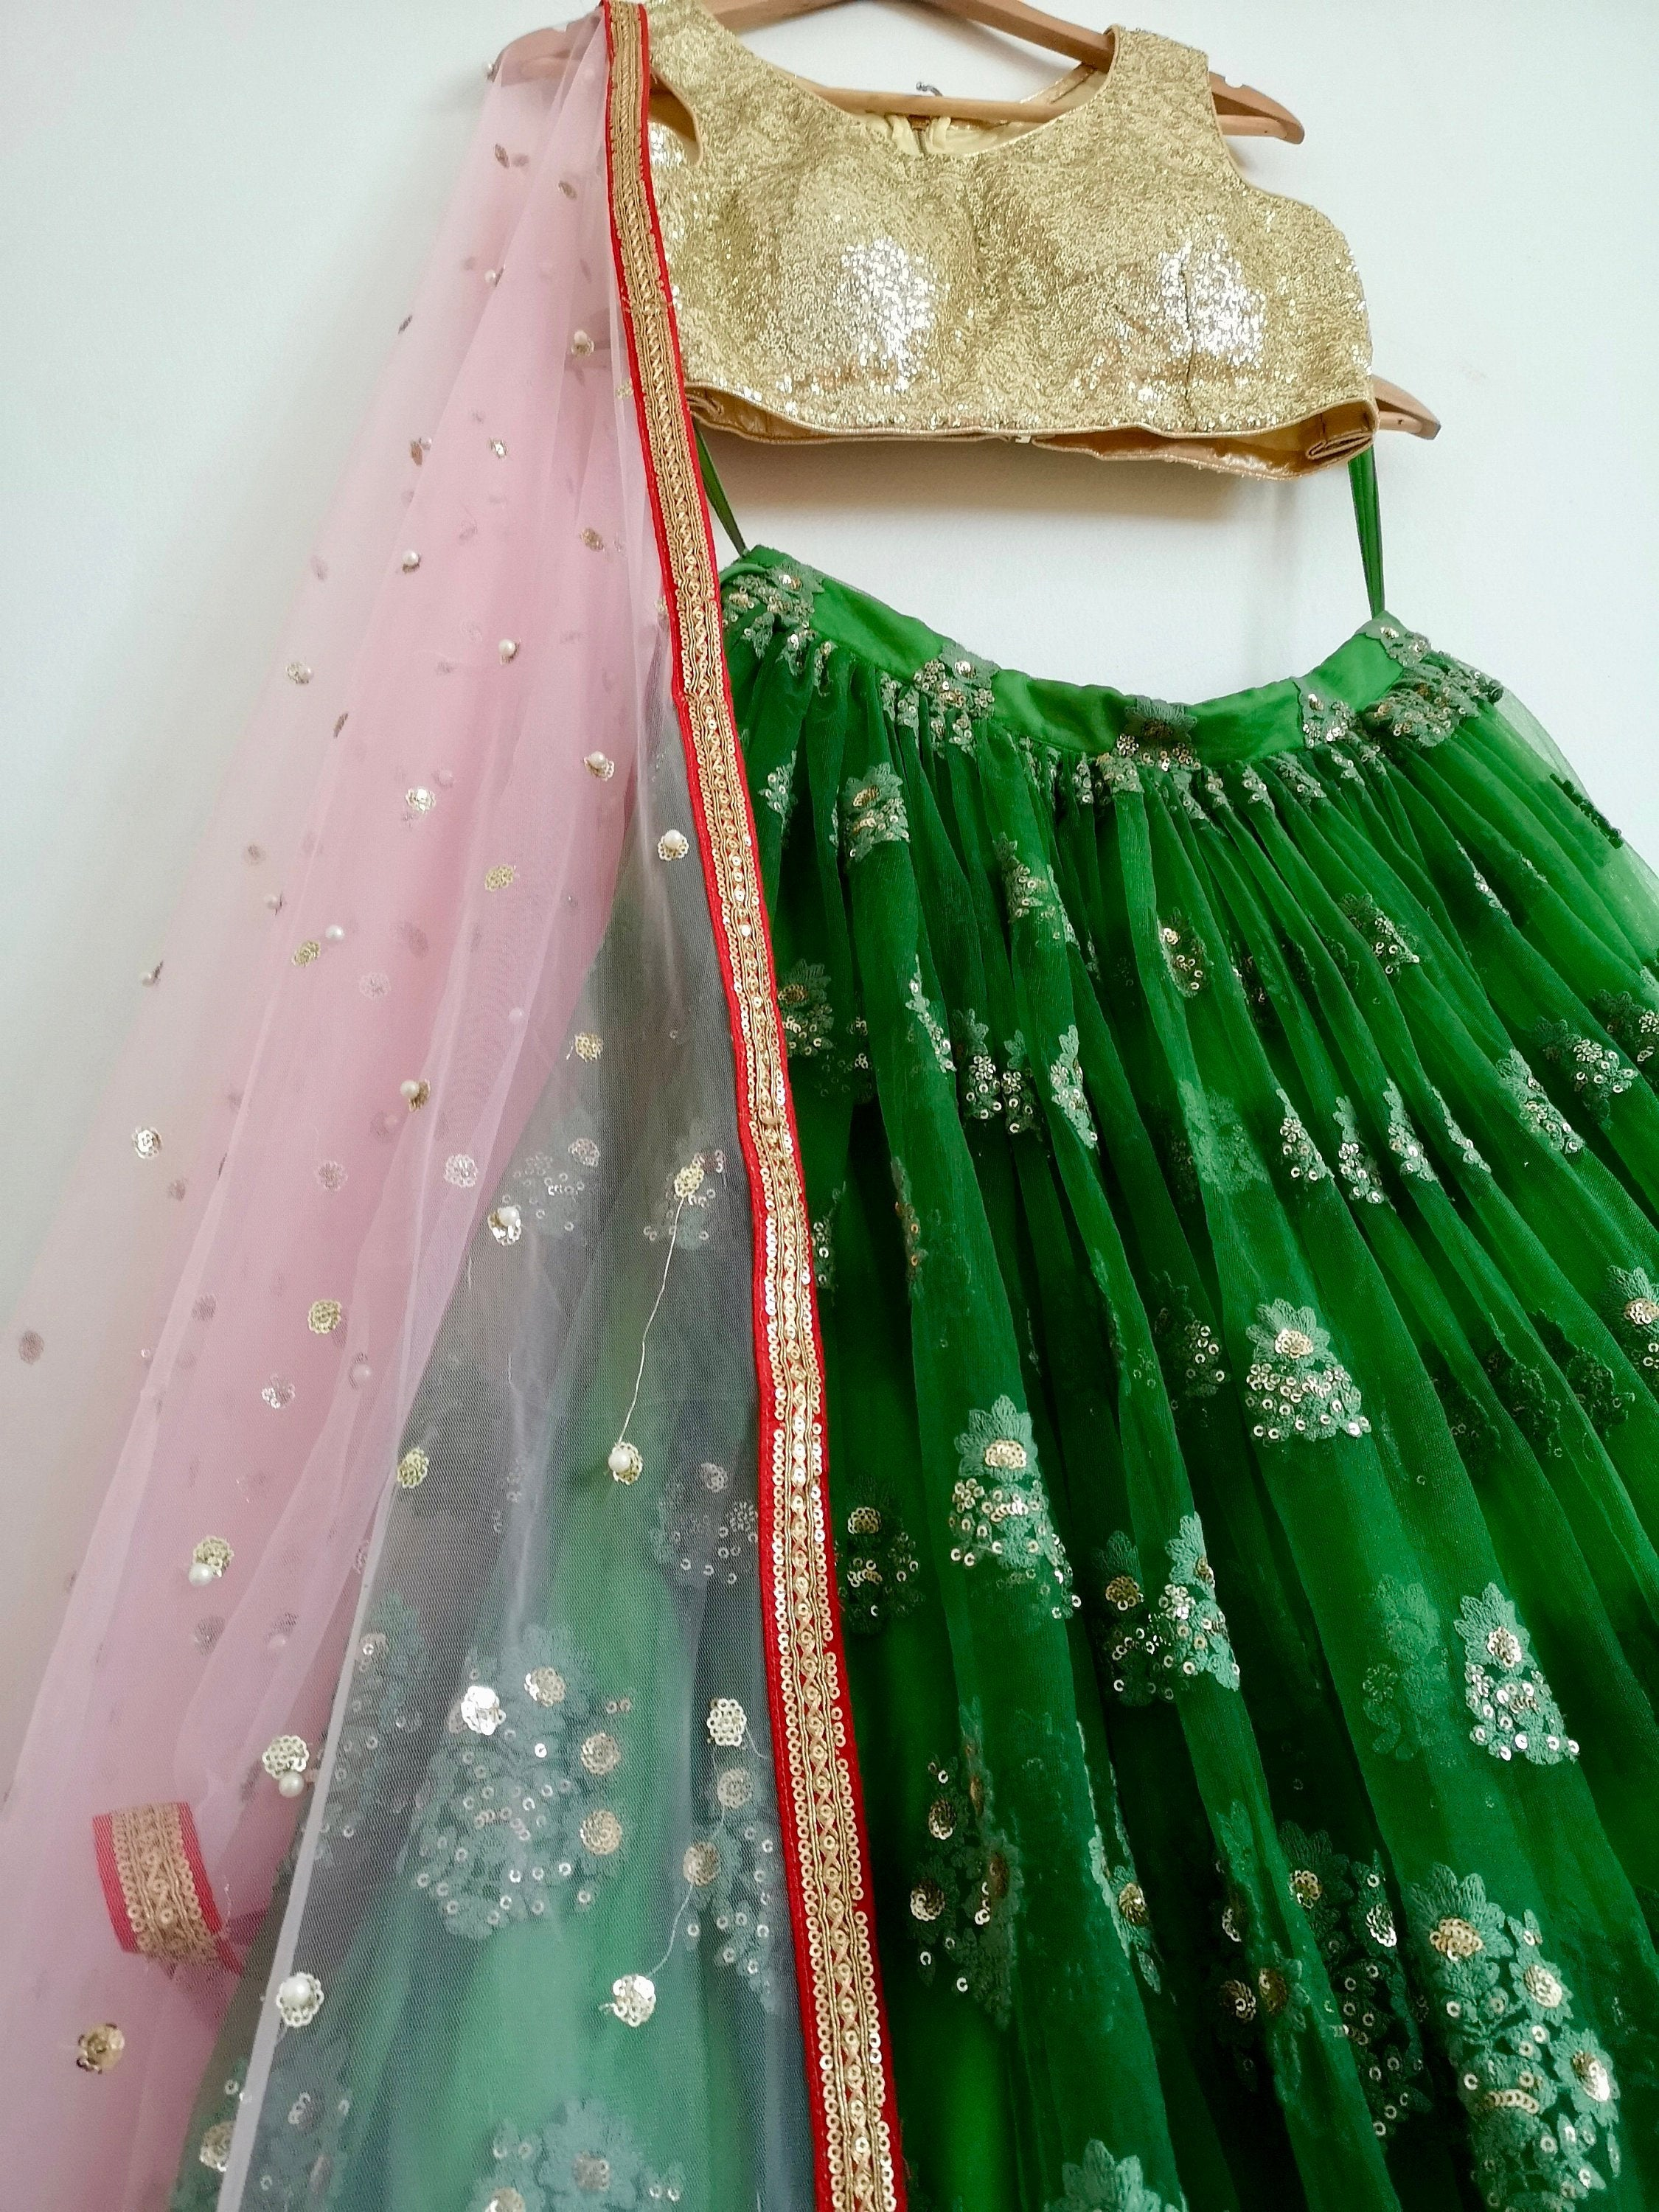 Sabyasachi pink and green, gold sequins embroidered lehenga, Indian Pakistani wedding bride bridal bridesmaid, customisable - Pink Chunari